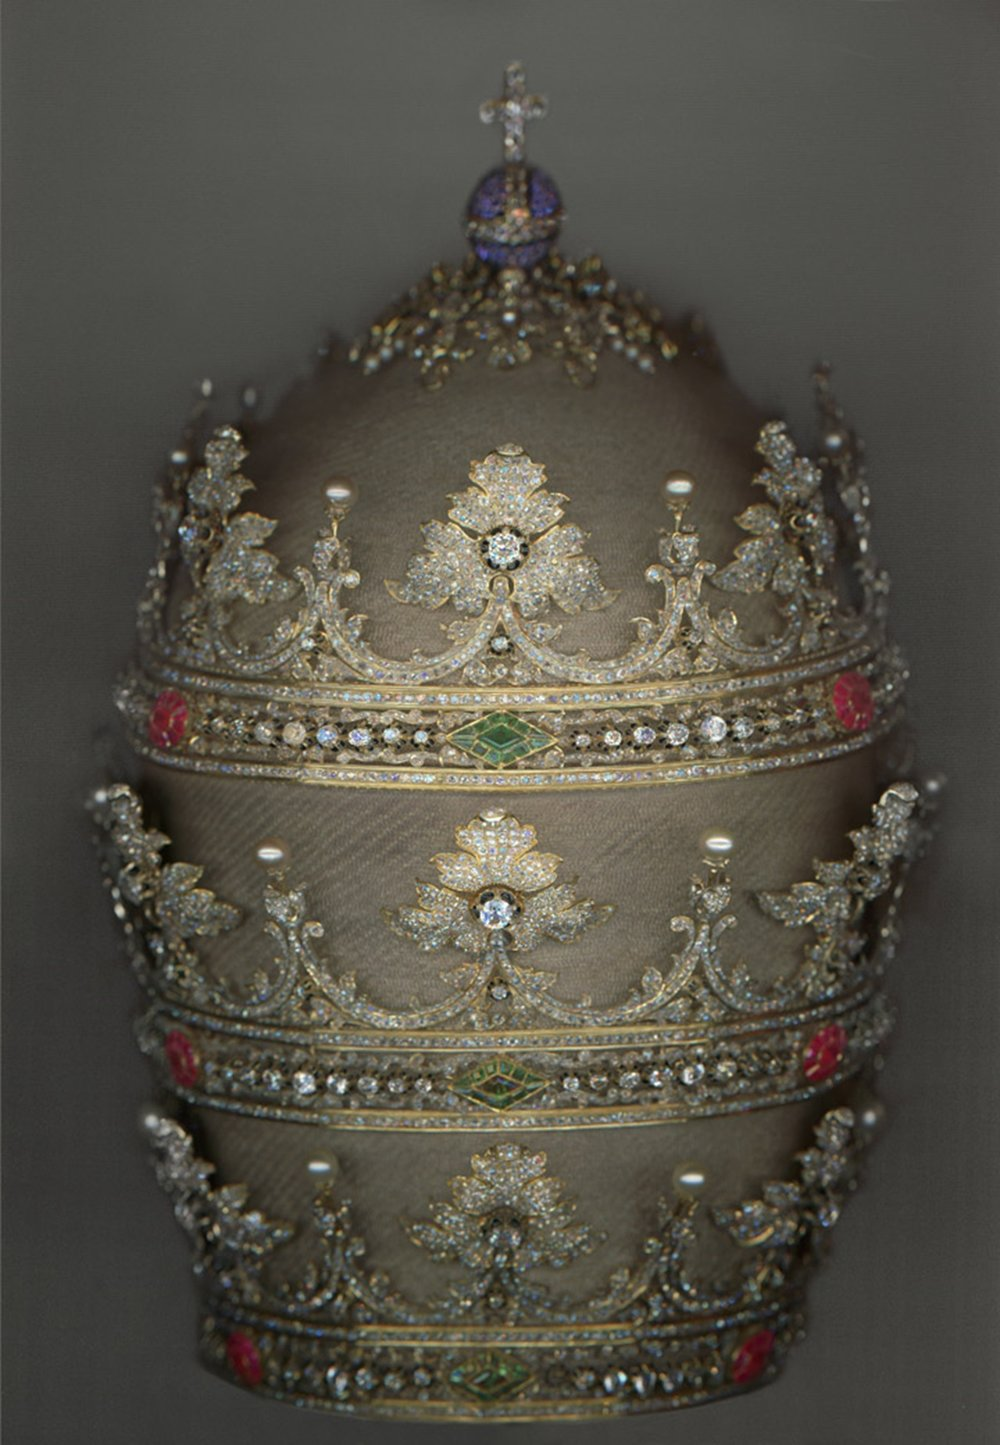 Tiara of Pius IX (r. 1846–78), 1854. German and Spanish. Courtesy of the Collection of the Office of Liturgical Celebrations of the Supreme Pontiff, Papal Sacristy, Vatican City. Digital composite scan by Katerina Jebb  viaThe Met